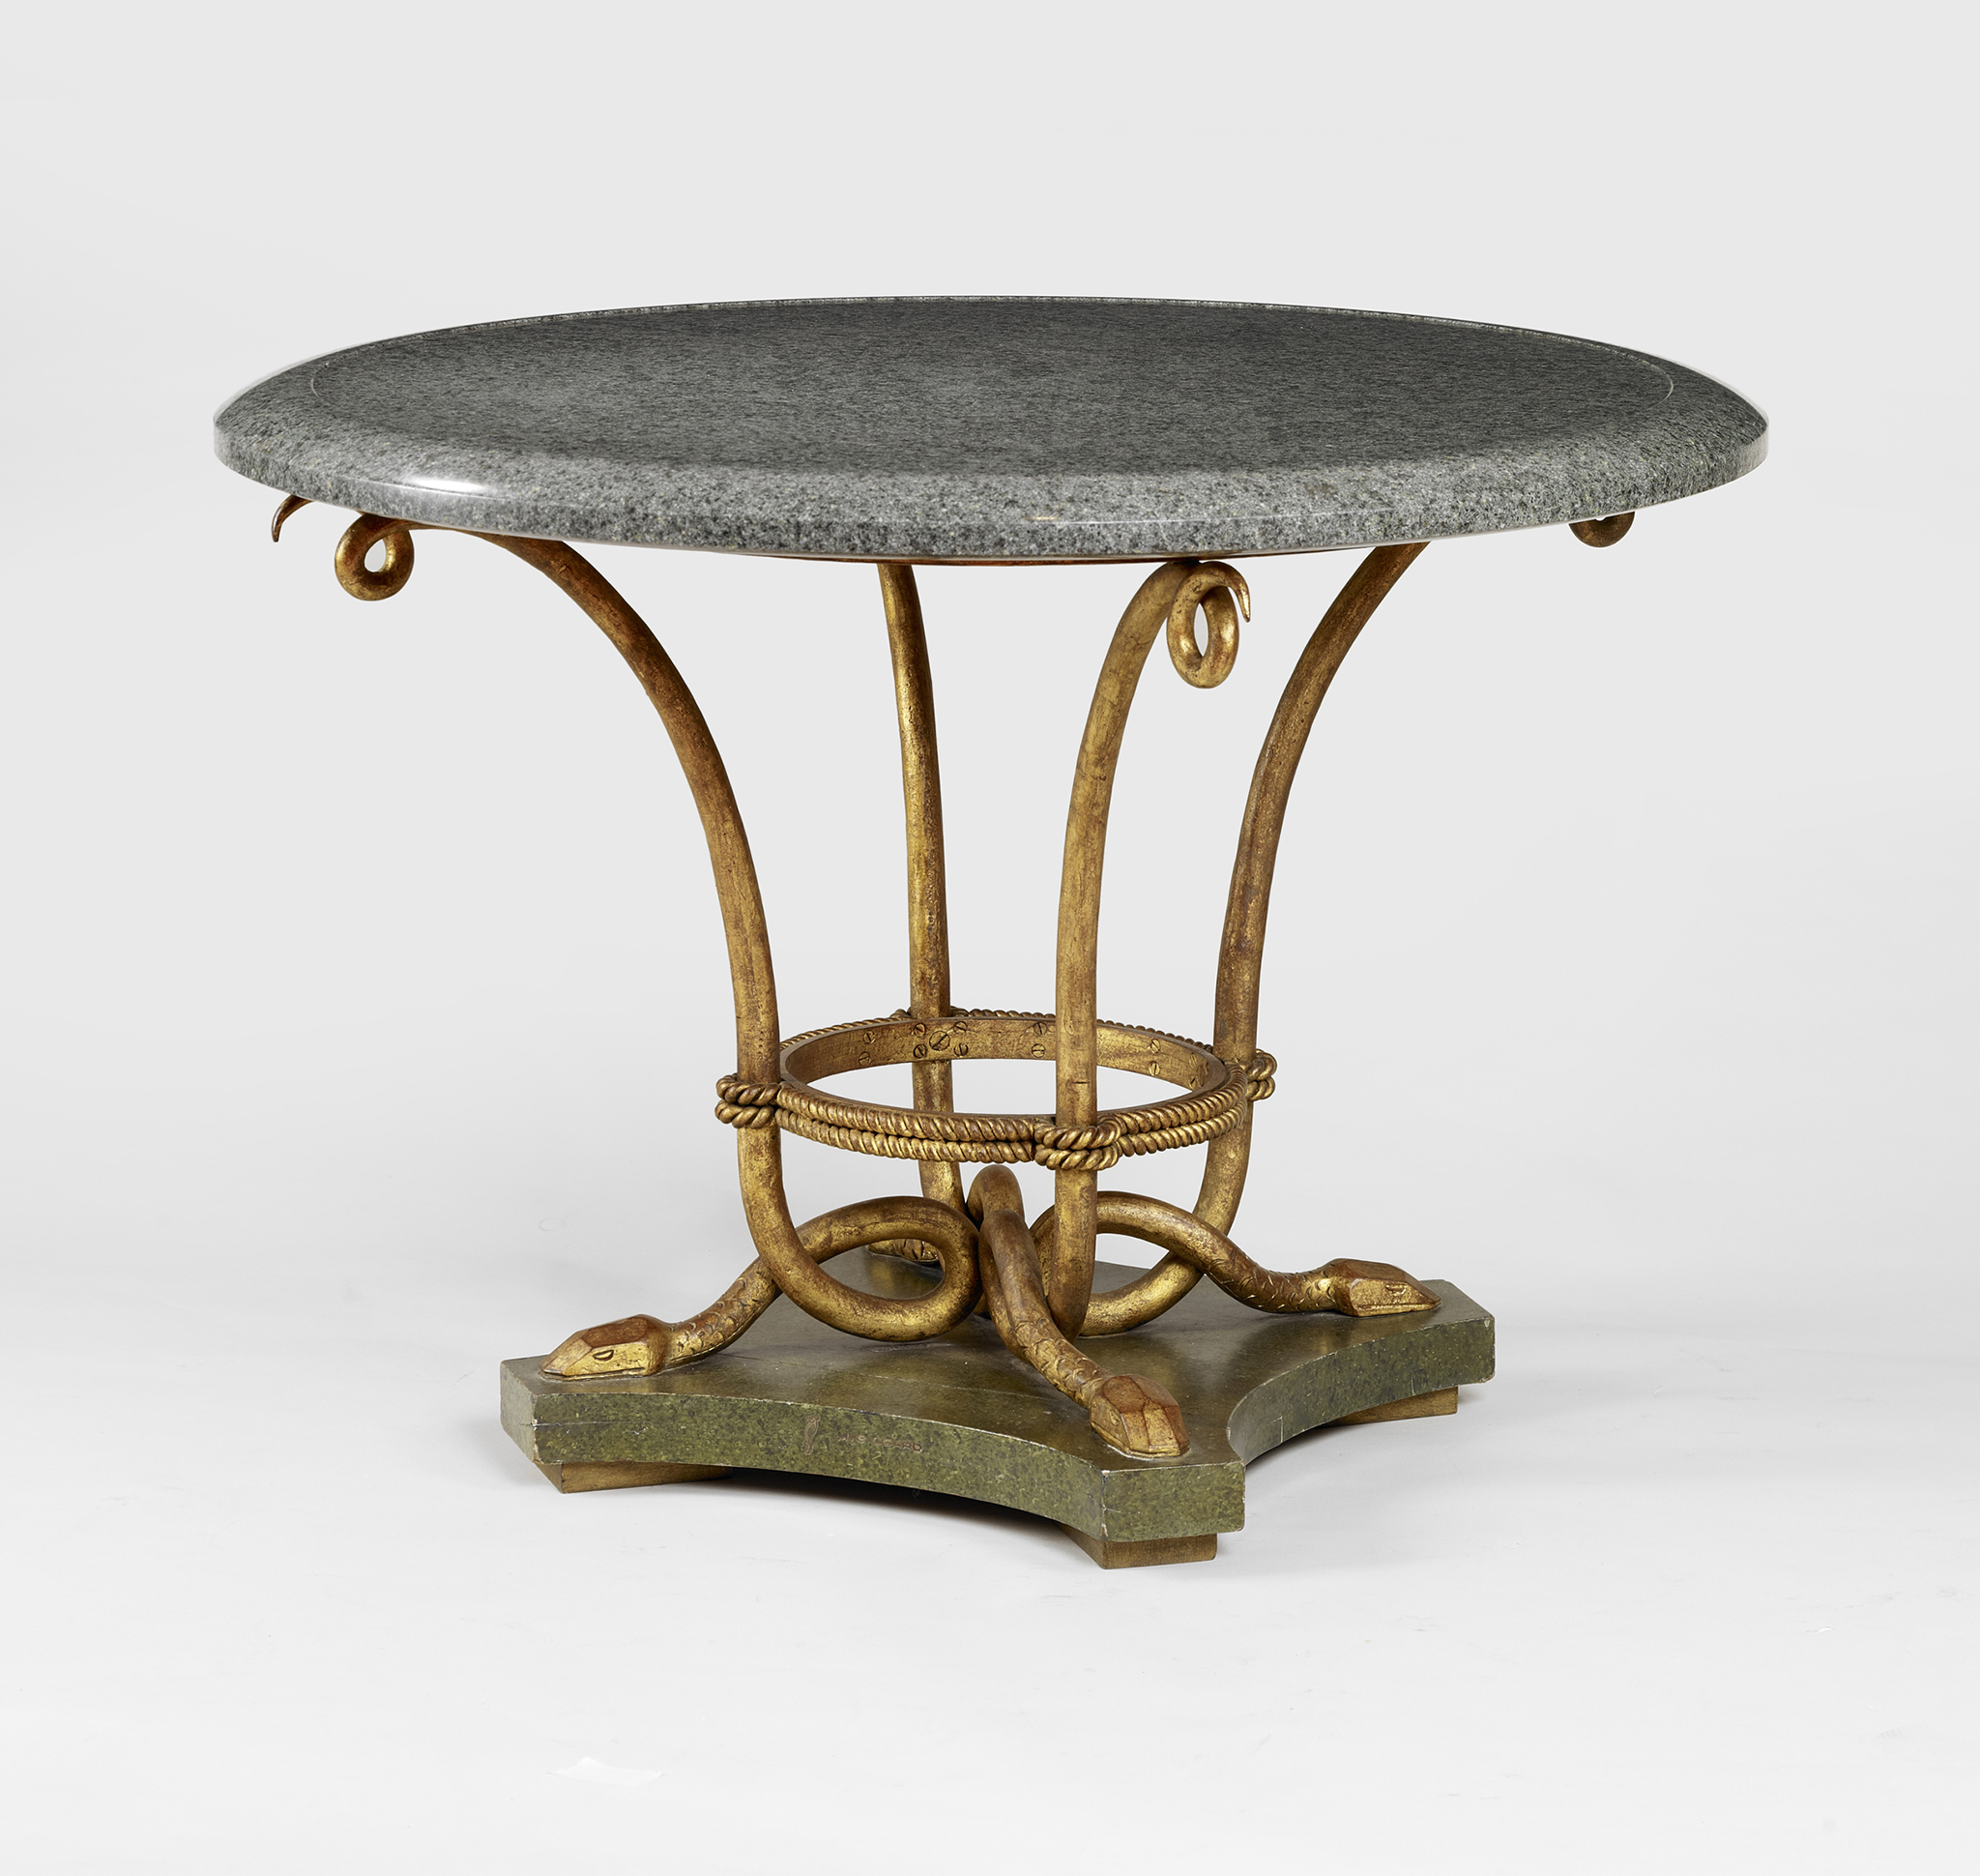 Rare Art Deco table by Marcel Coard, 1940 gilded wrought iron snake-shaped legs and marble top, standing on a quadrangular marble-effect wood base, 108 x 78 cm  Courtesy of Robert Zehil Gallery